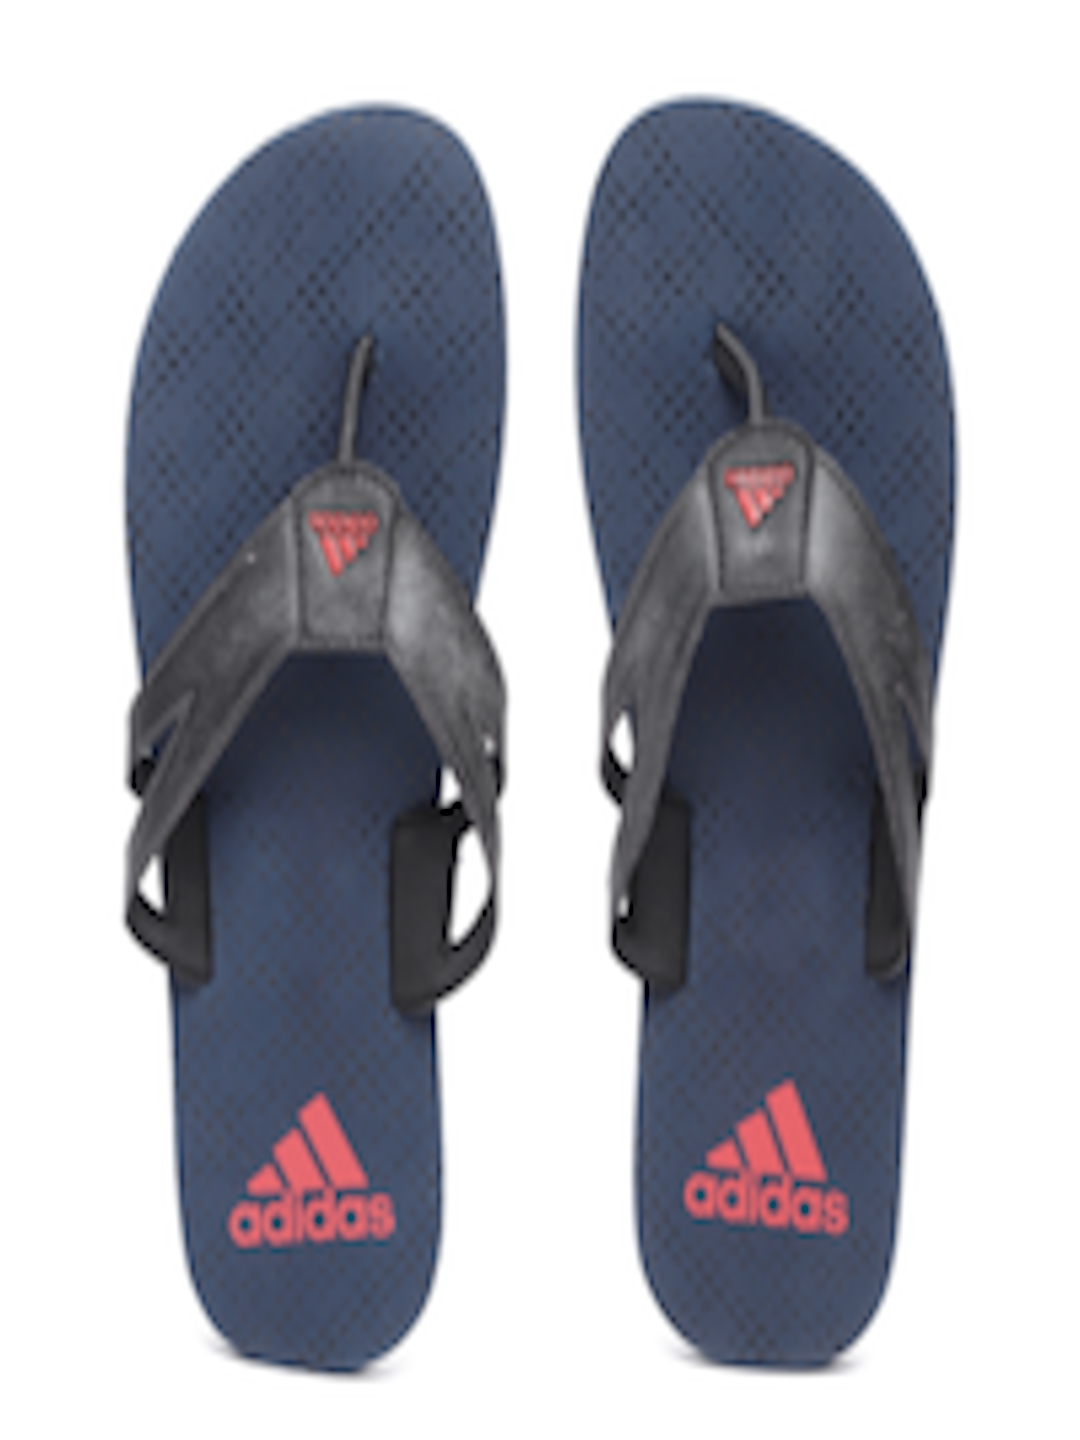 056603a37419 Buy ADIDAS Men Charcoal Grey   Navy Blue OZOR Printed Thong Flip Flops - Flip  Flops for Men 6632866